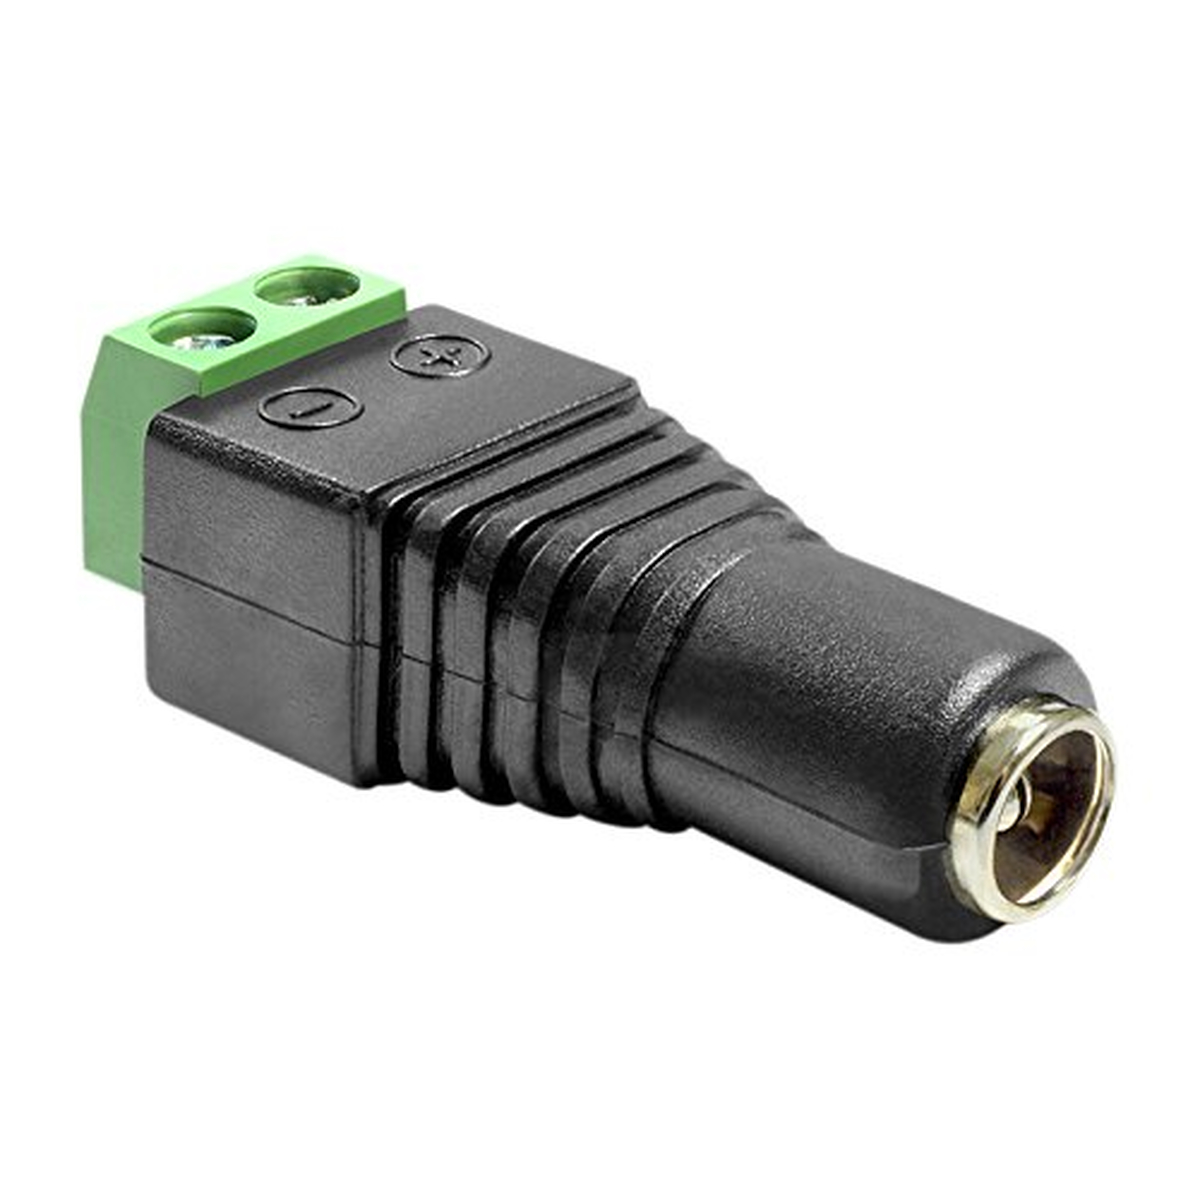 DeLOCK Adapter Terminalblock > DC 2,5 x 5,5 mm